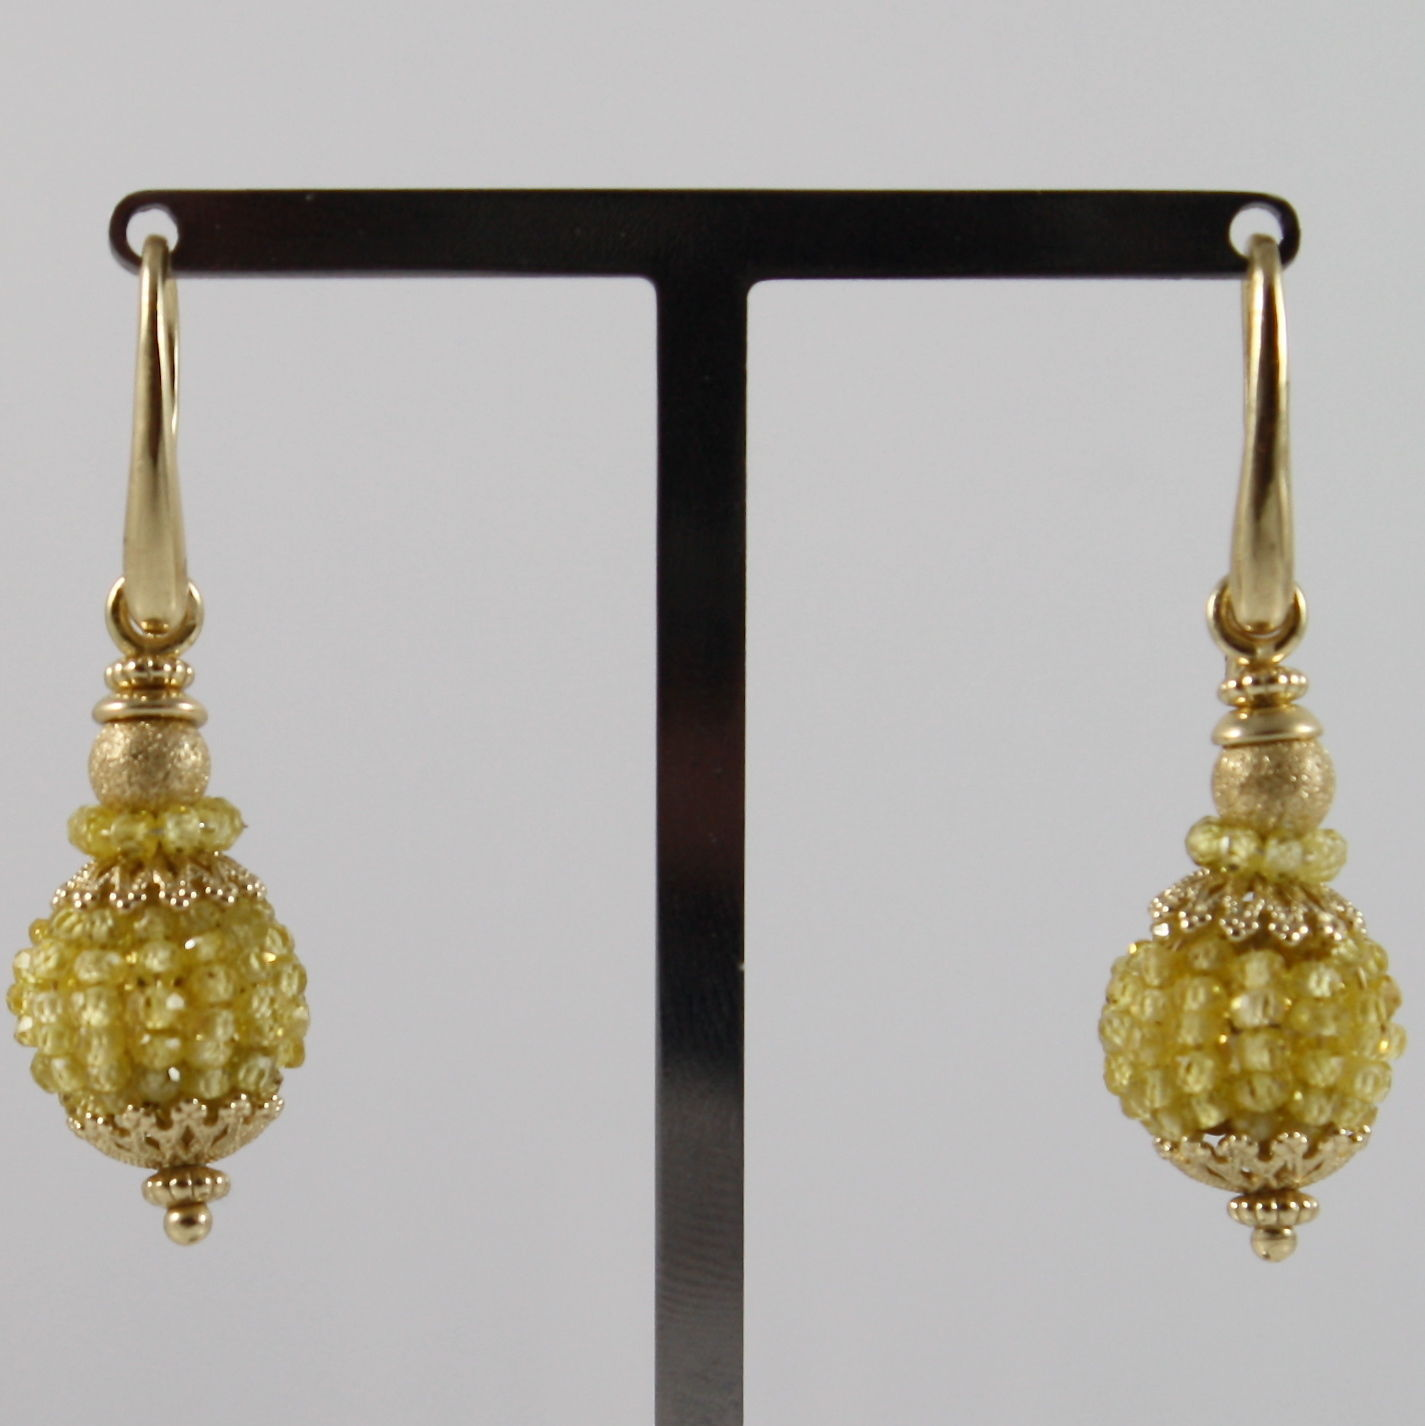 925 SILVER EARRINGS PLAT. GOLD WITH LEMON QUARTZ, MADE IN ITALY BY SAVOIA JEWEL